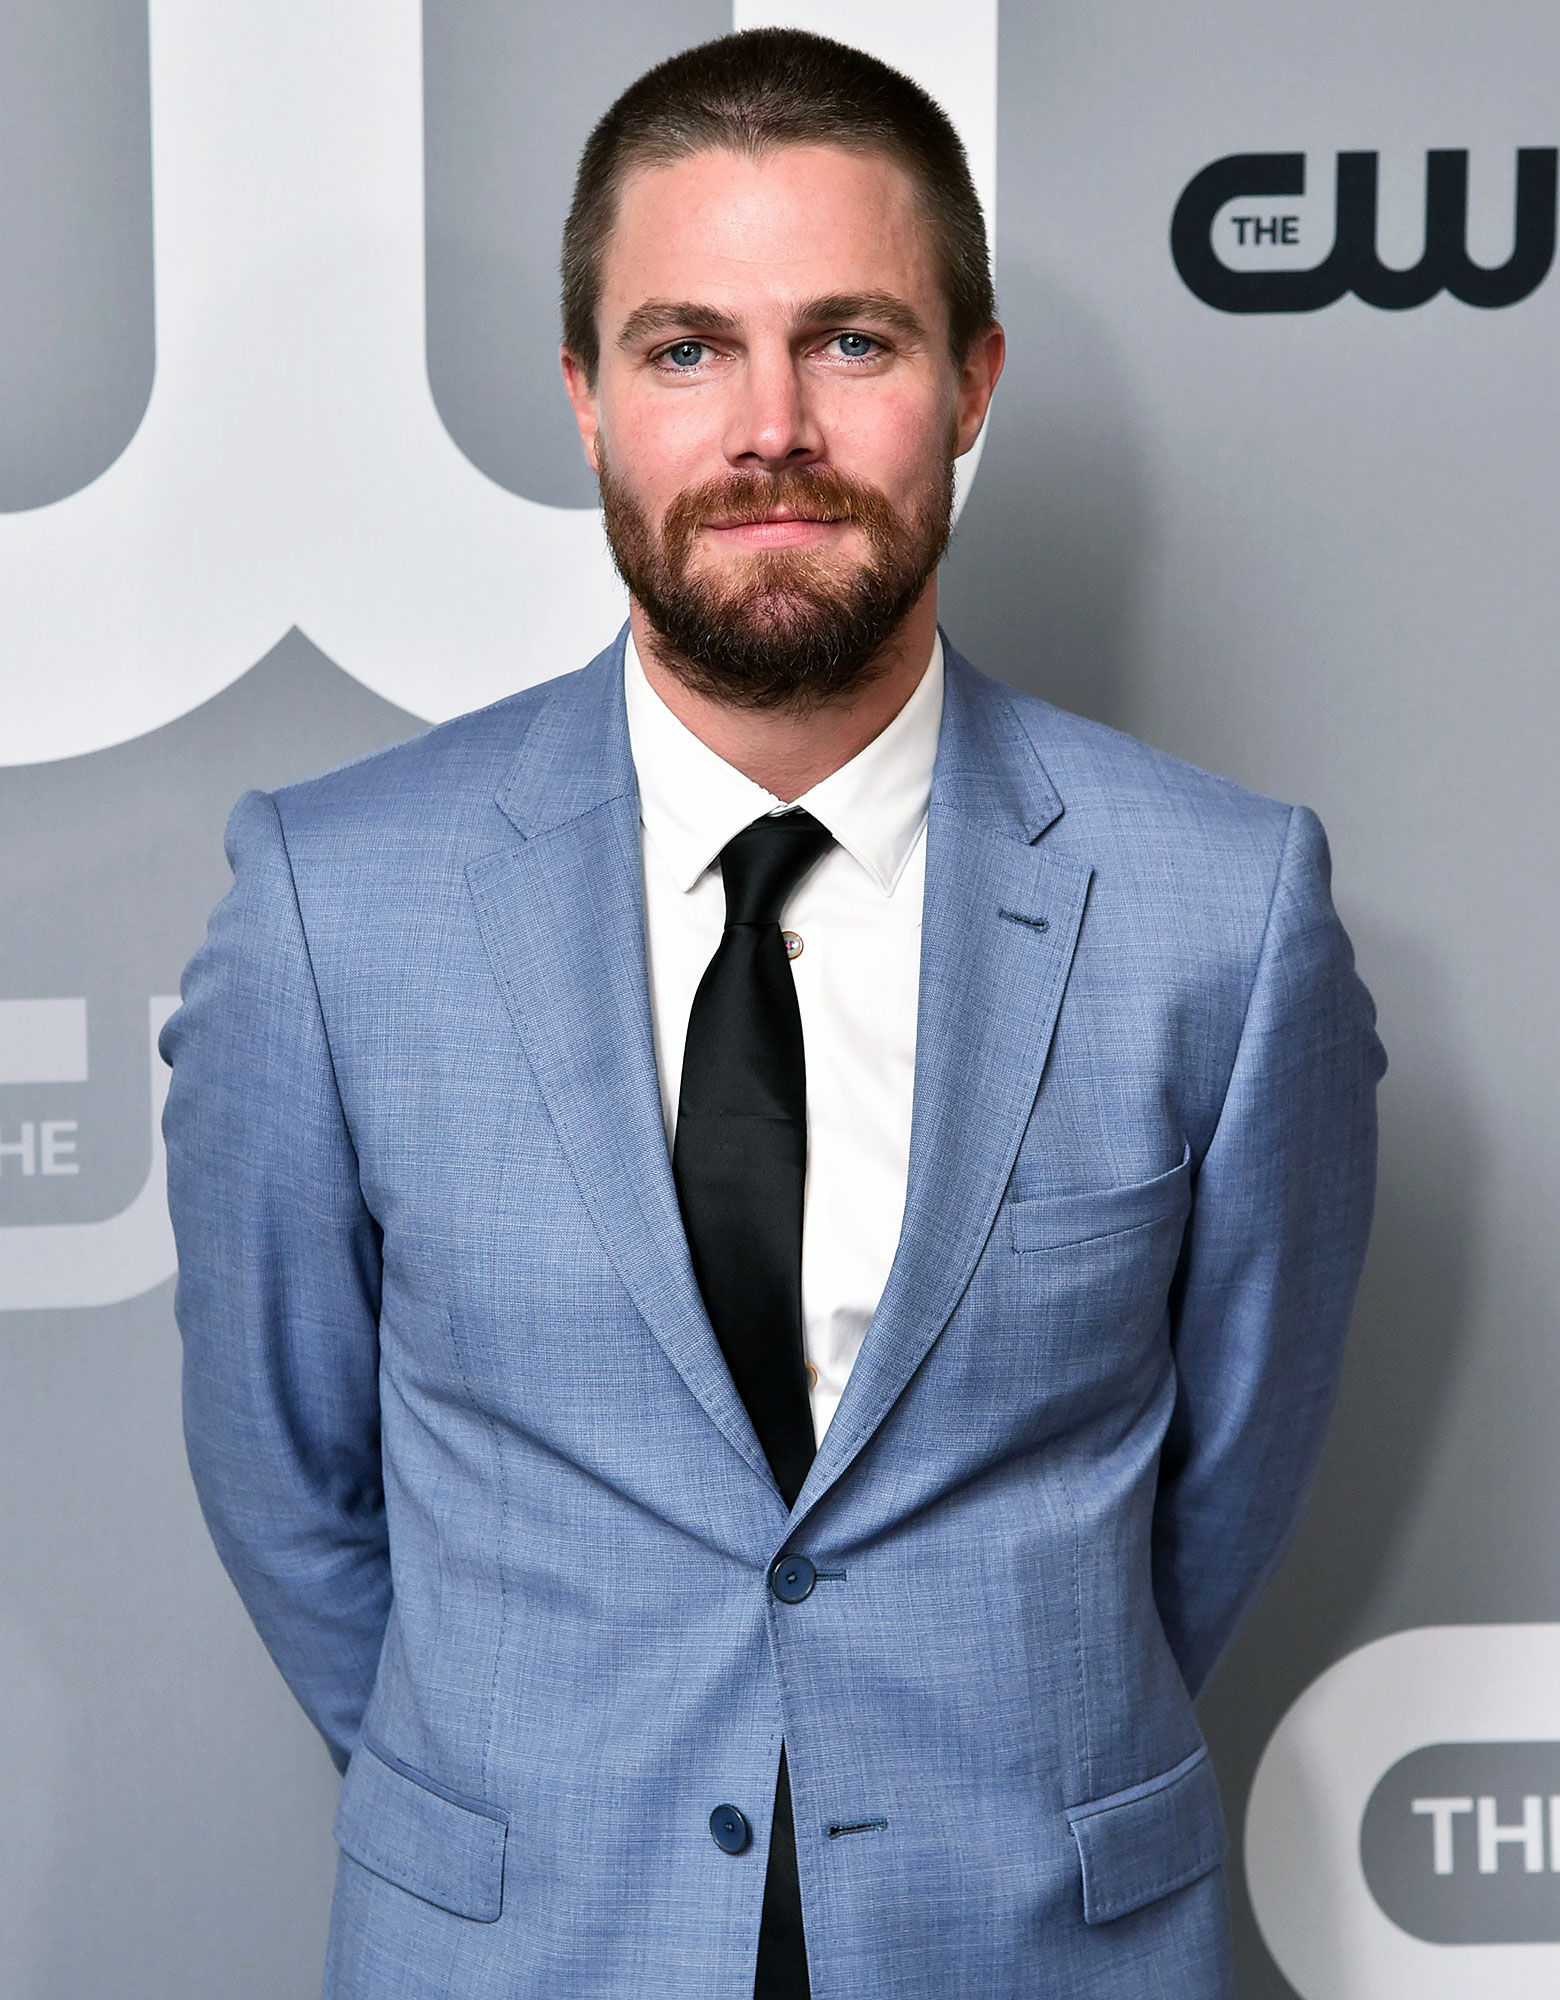 Stephen Amell Responds After Comic Book Writer Tee Franklin Accuses Him of Being Racist